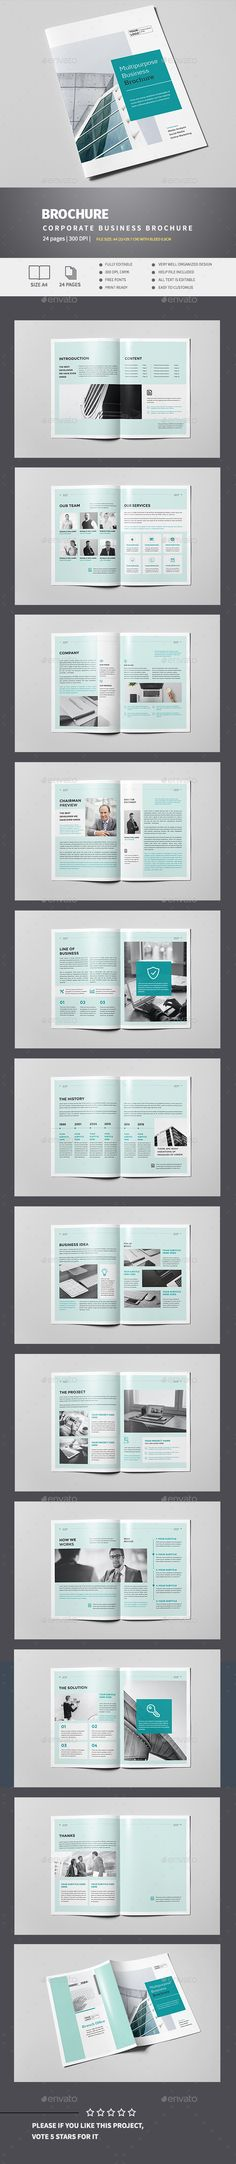 Product Promotion Catalog Indesign Template V  Indesign